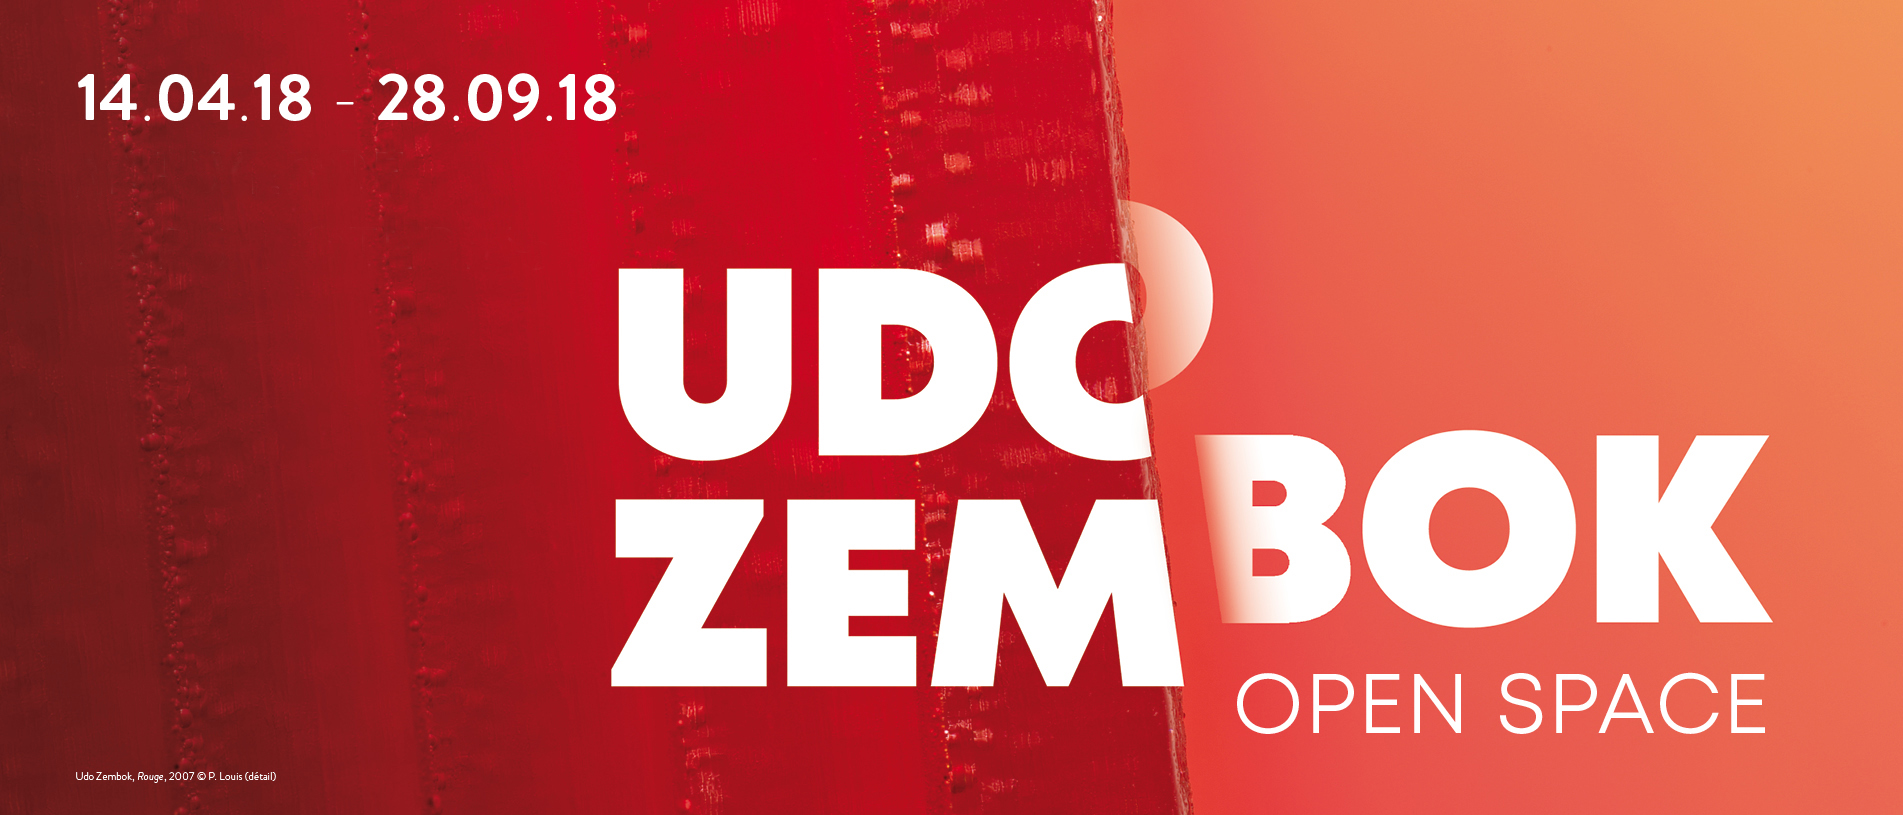 Udo Zembok, Open Space du 14 avril 2018 au 28 septembre 2018